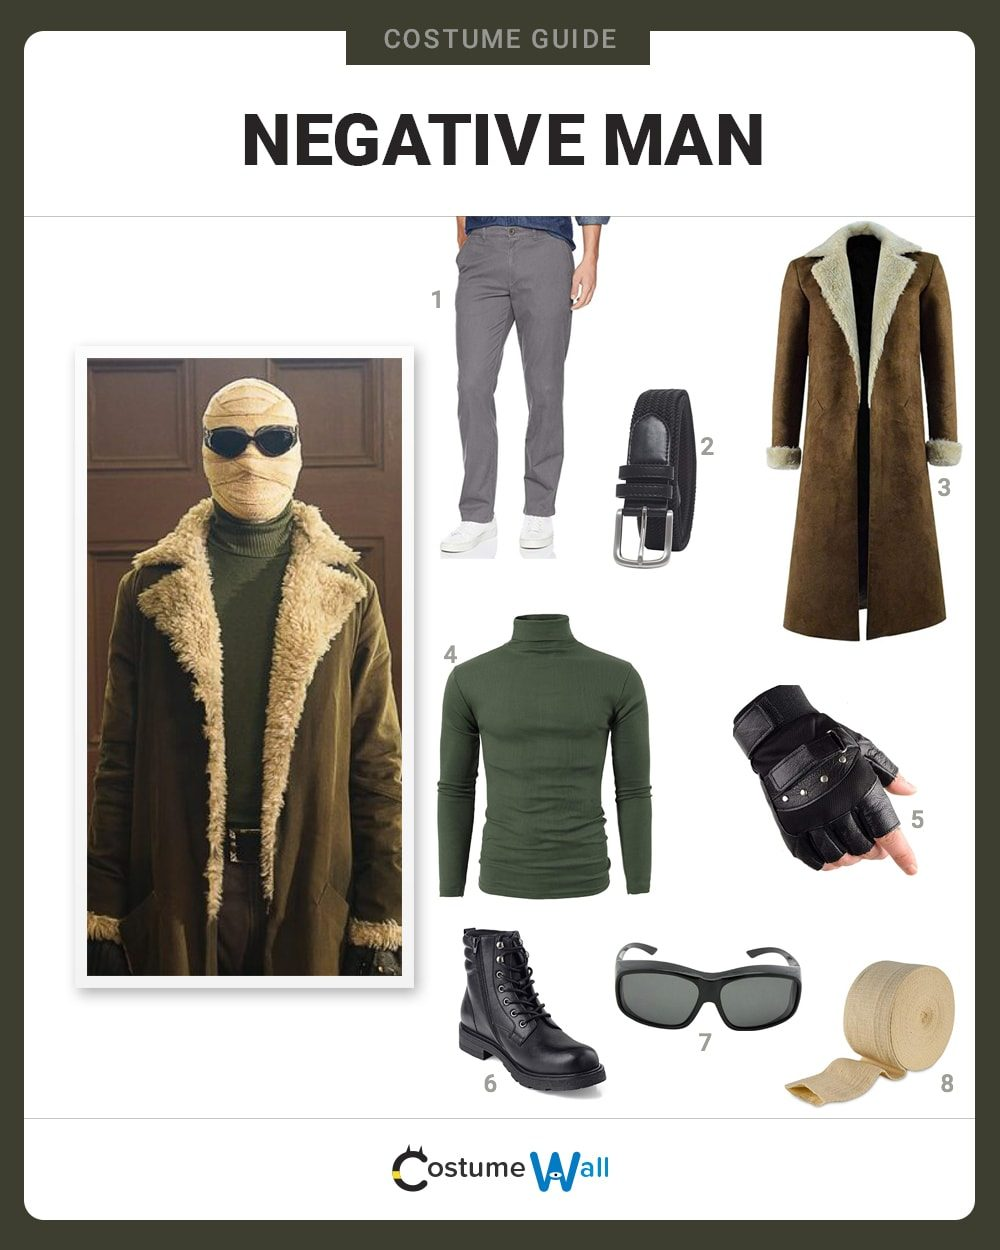 Negative Man Costume Guide